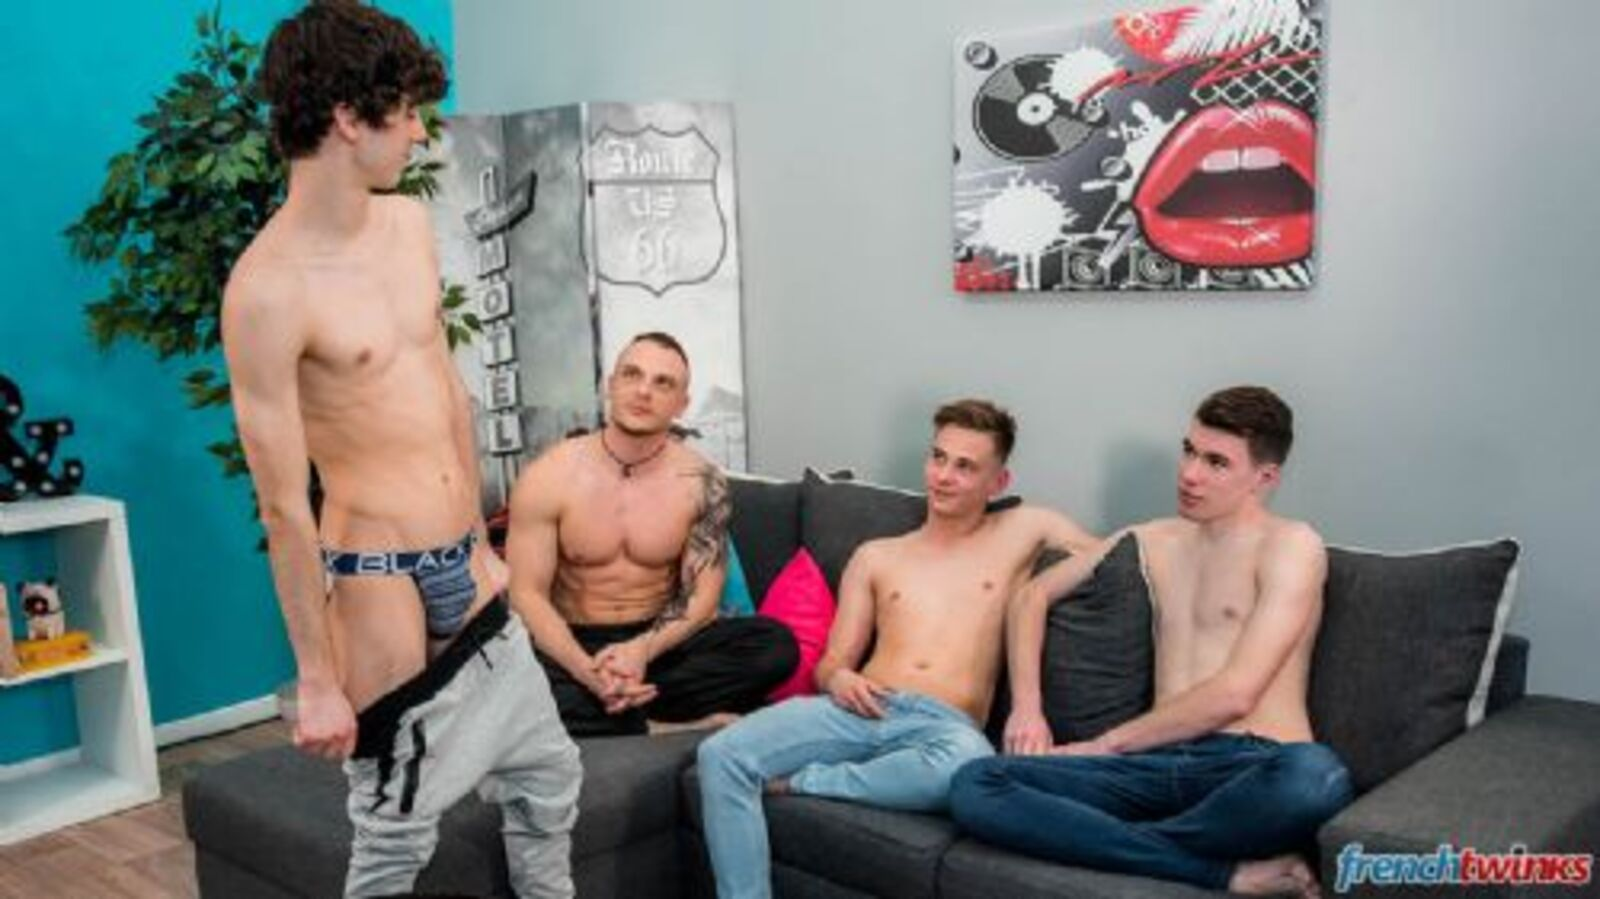 FRENCHTWINKS 240818-10